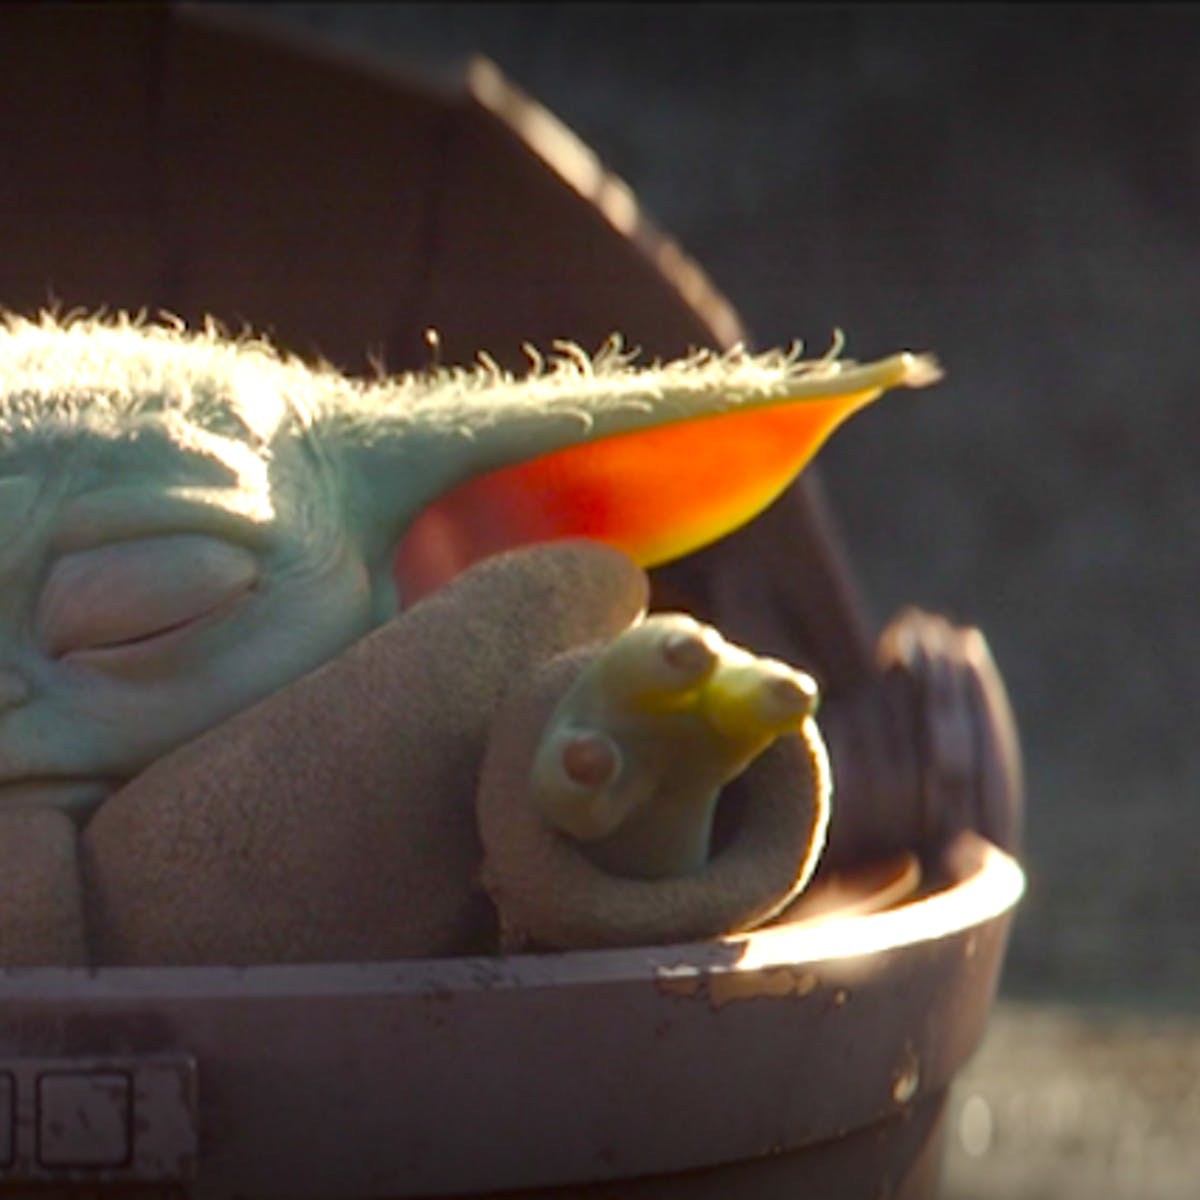 Who is Baby Yoda? Maybe it's just Yoda